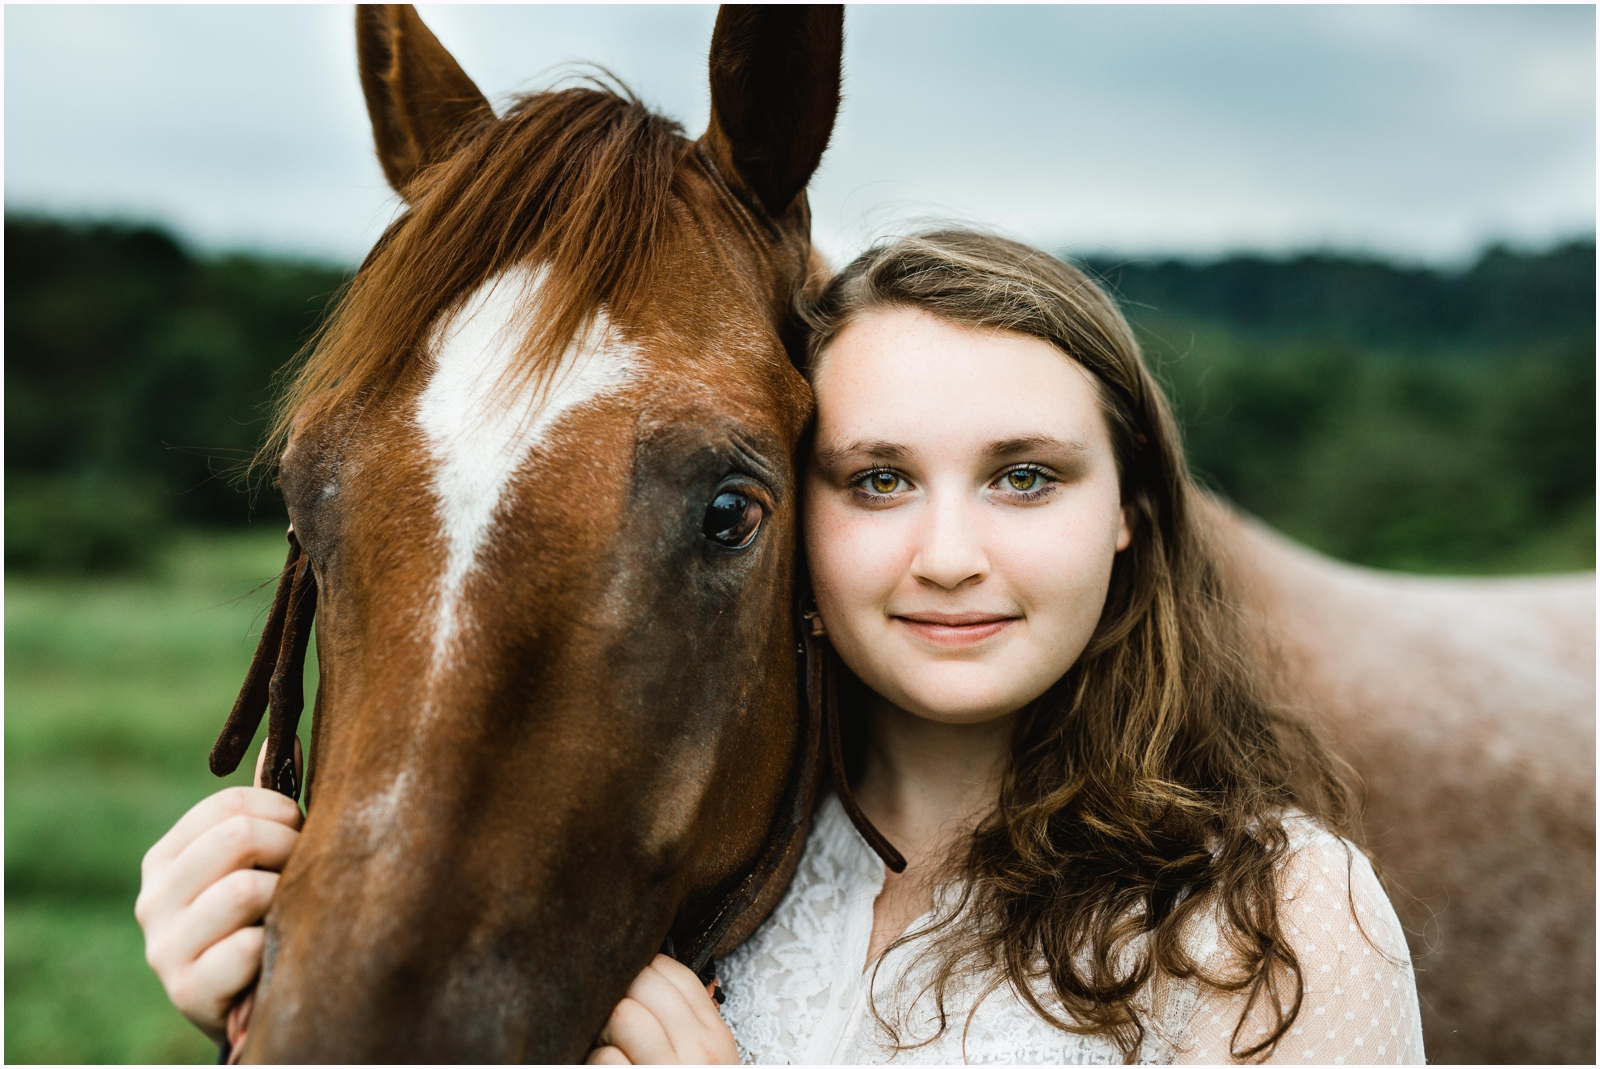 senior_portraits_photos_high_school_mount_pleasant_jamie_leonard_photography_pa_ligonier_kecksburg.jpg